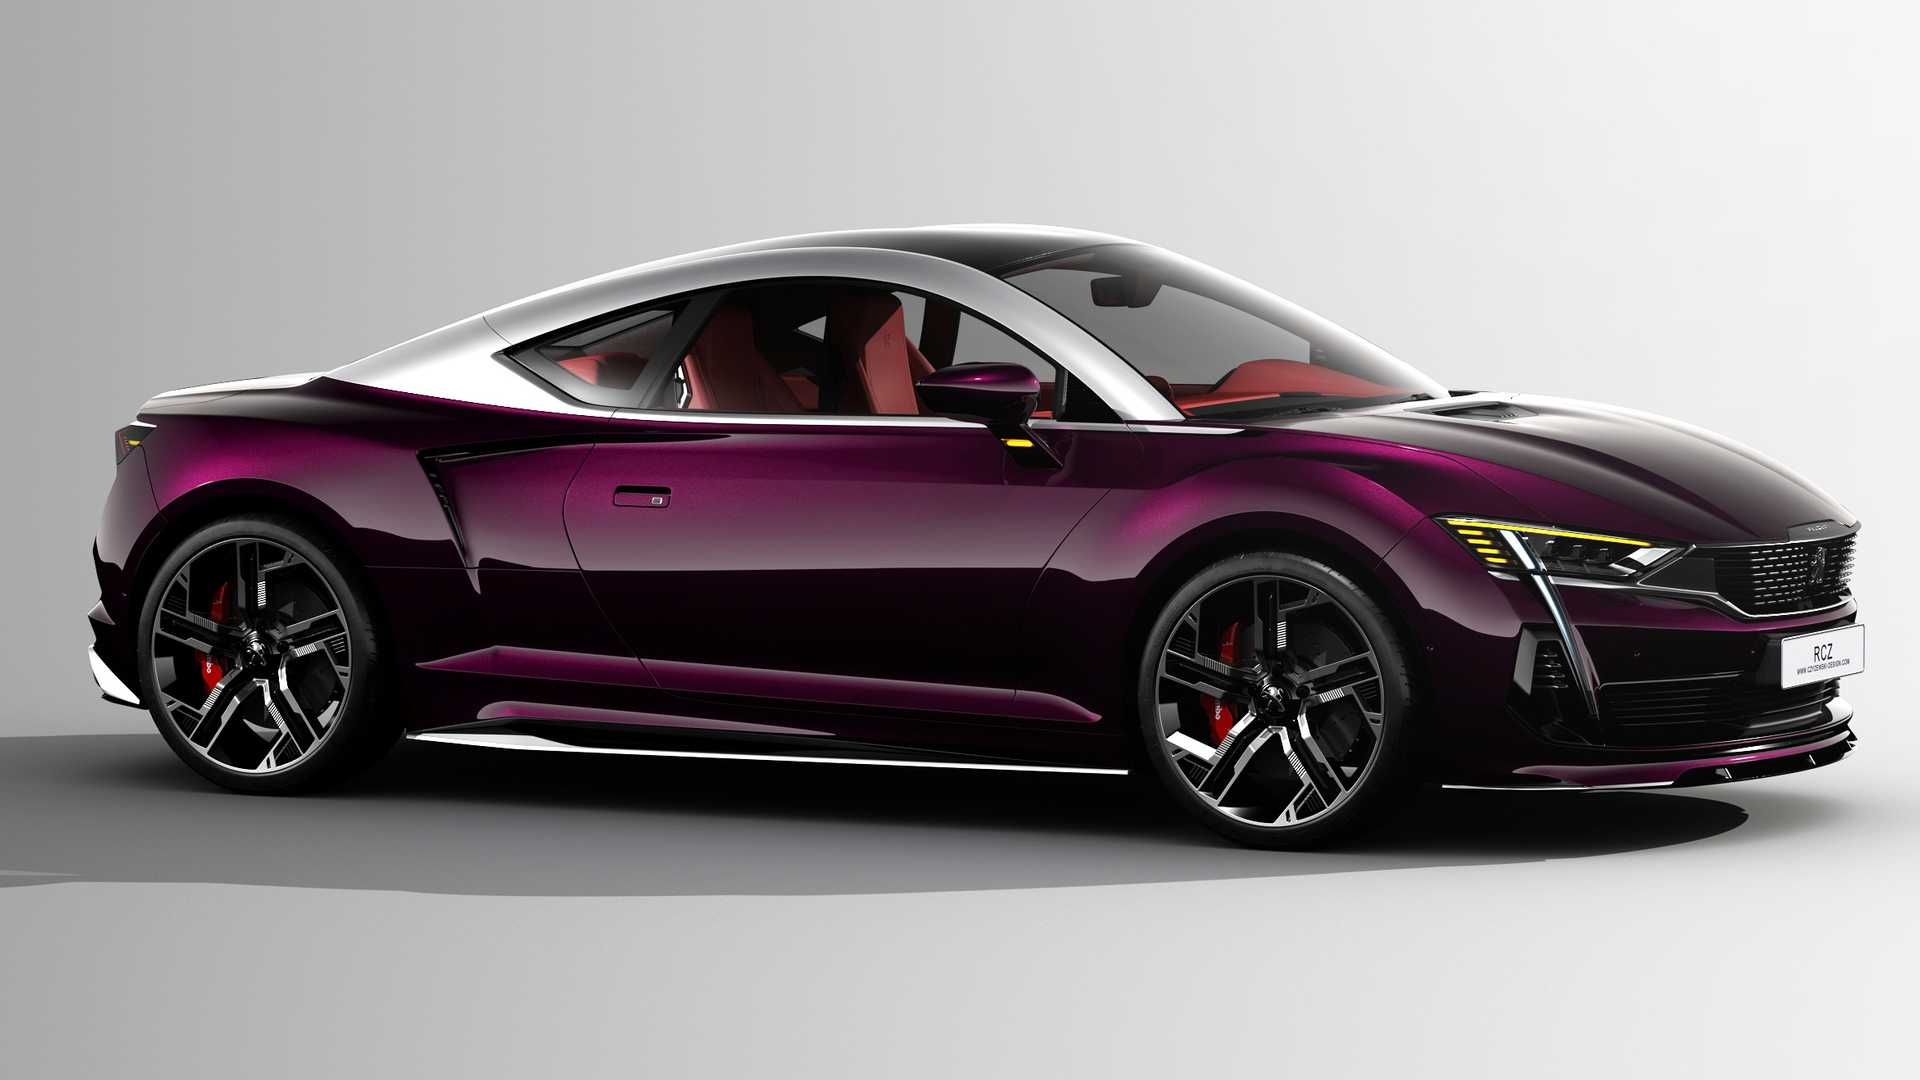 2020 Peugeot Rcz Concept Rendering Imagines Stunning Sports Coupe